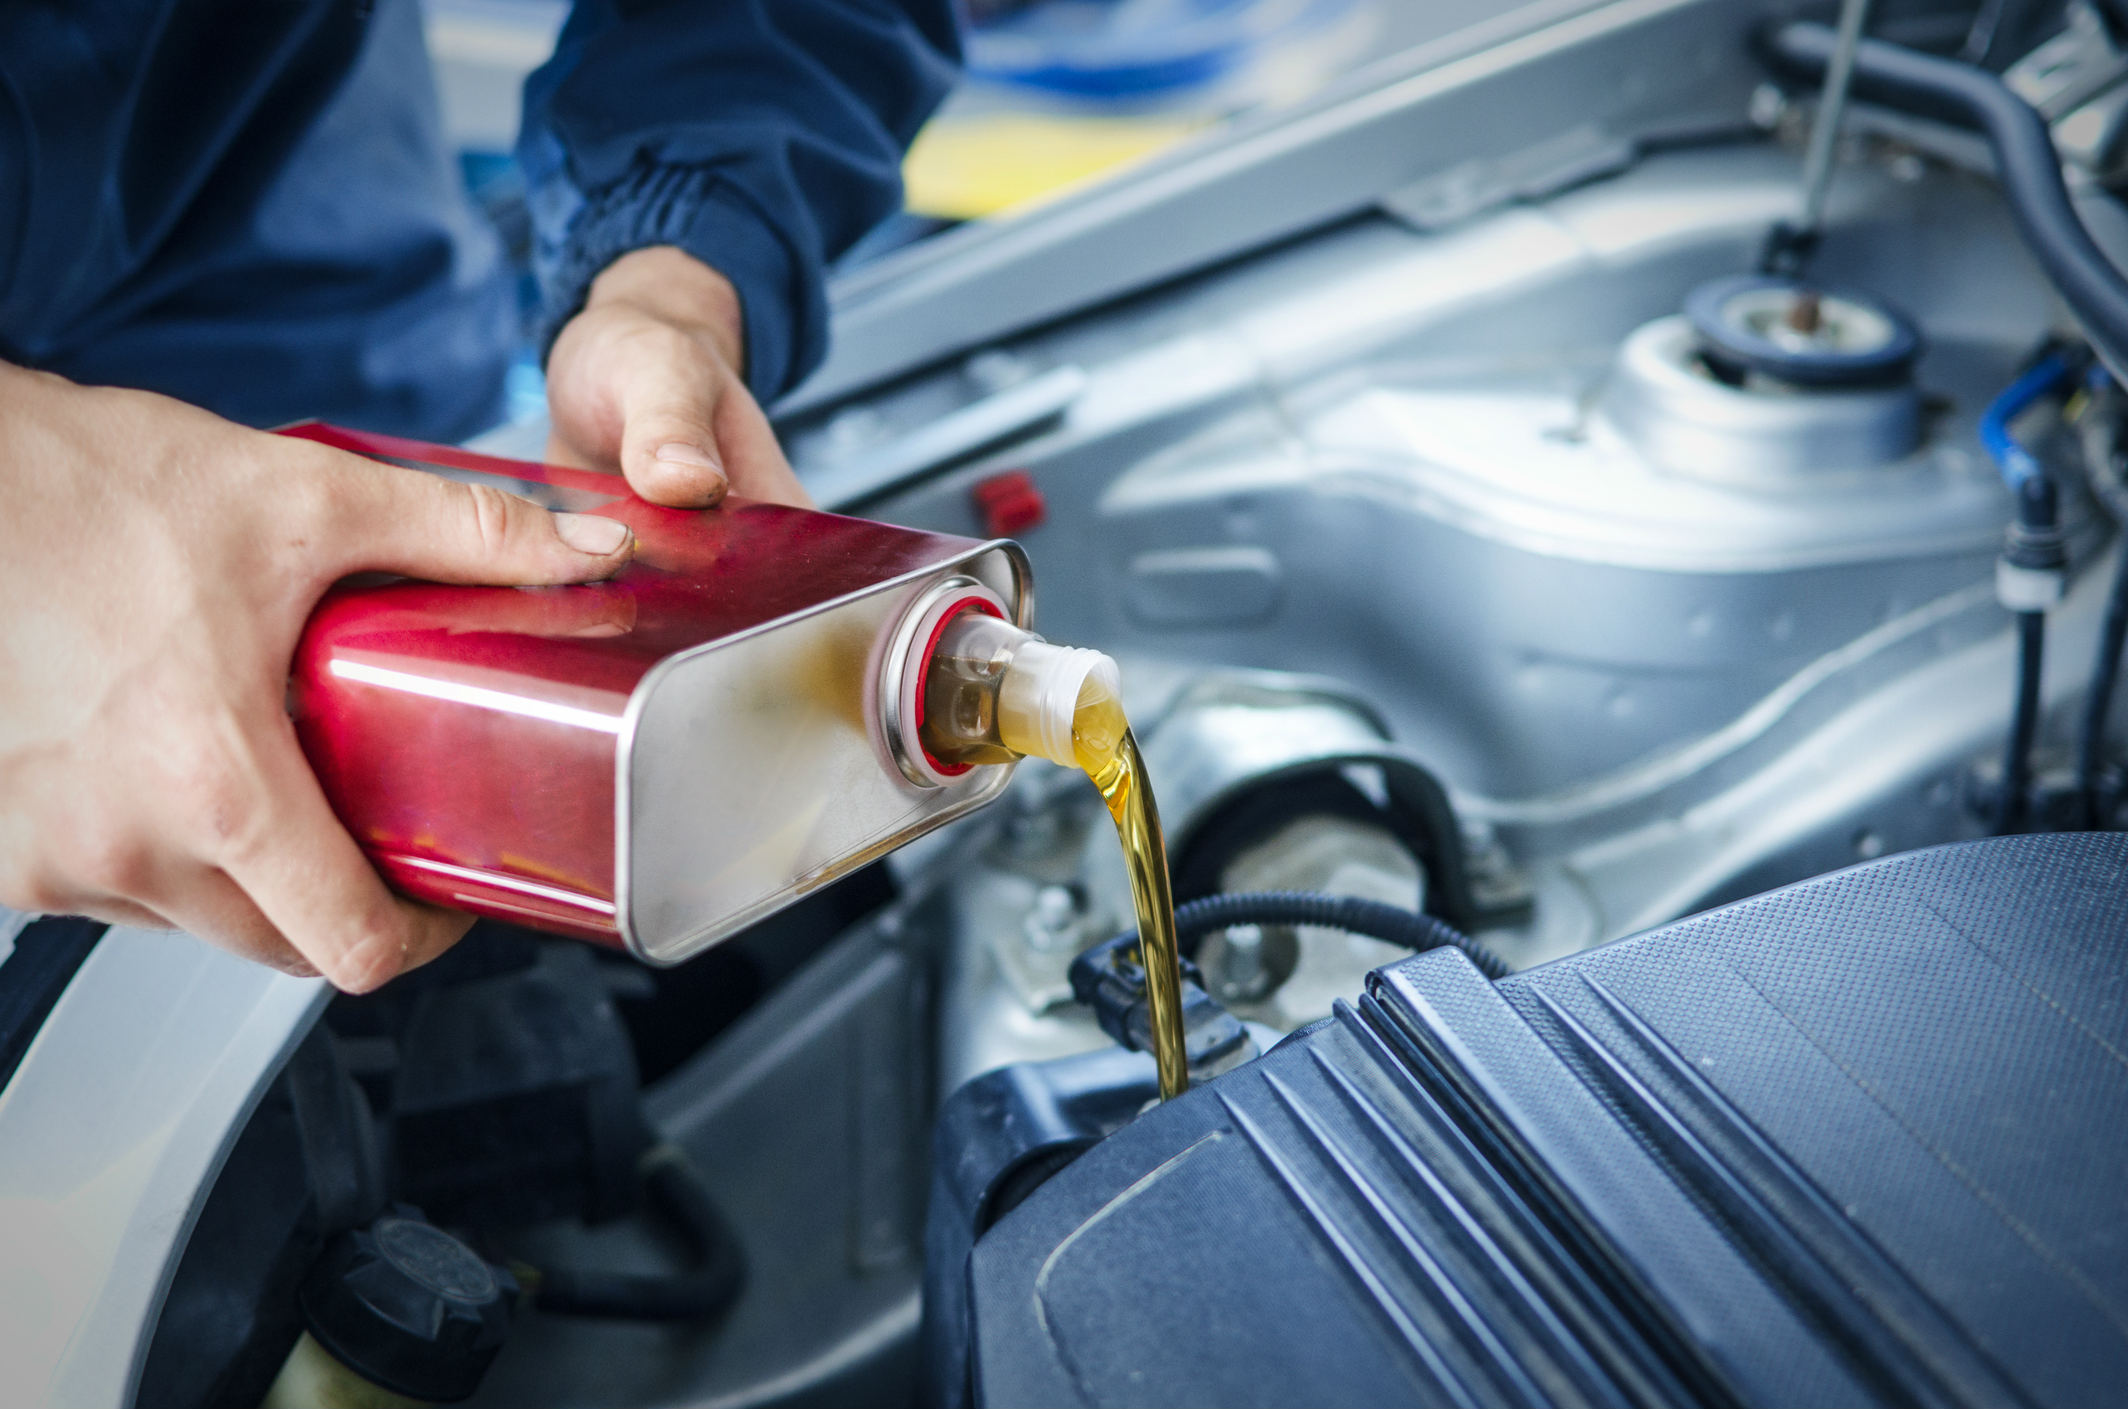 What's the best way to check an engine's oil level?